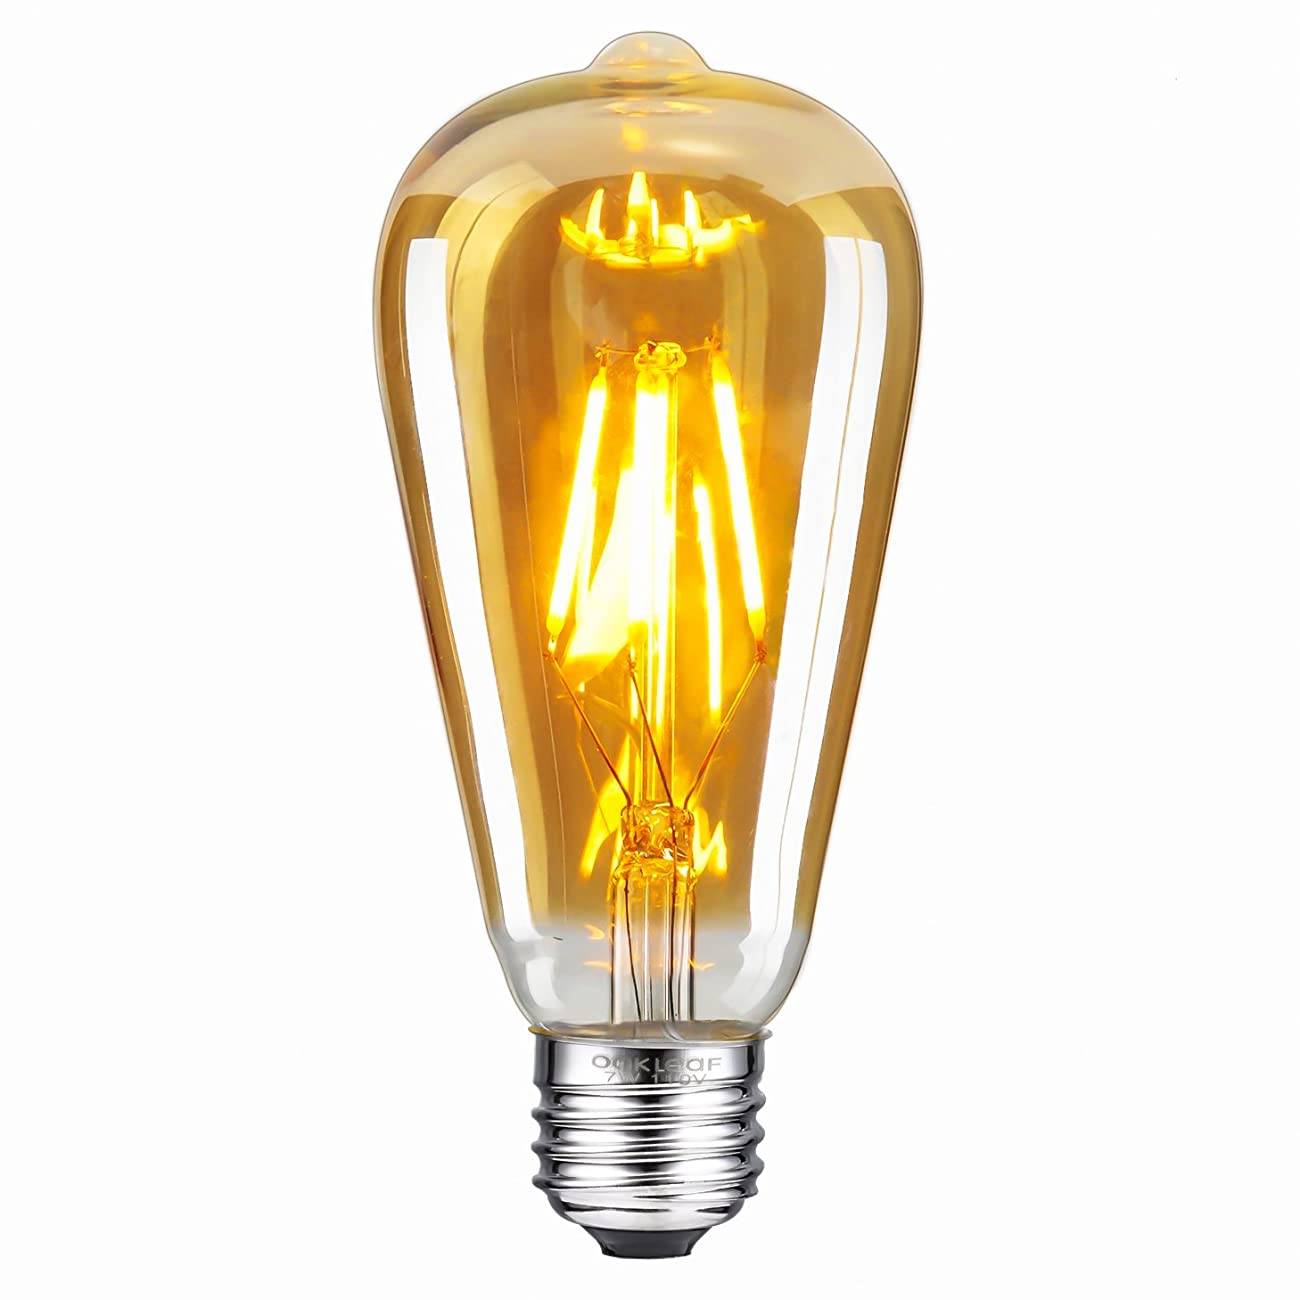 Antique LED Bulb, Oak Leaf 4W ST64 Vintage Antique Style Edison Bulb E26 2200K Warm White LED Light 40W Equivalent, 400lm, Amber Glass, Pack of 6 0